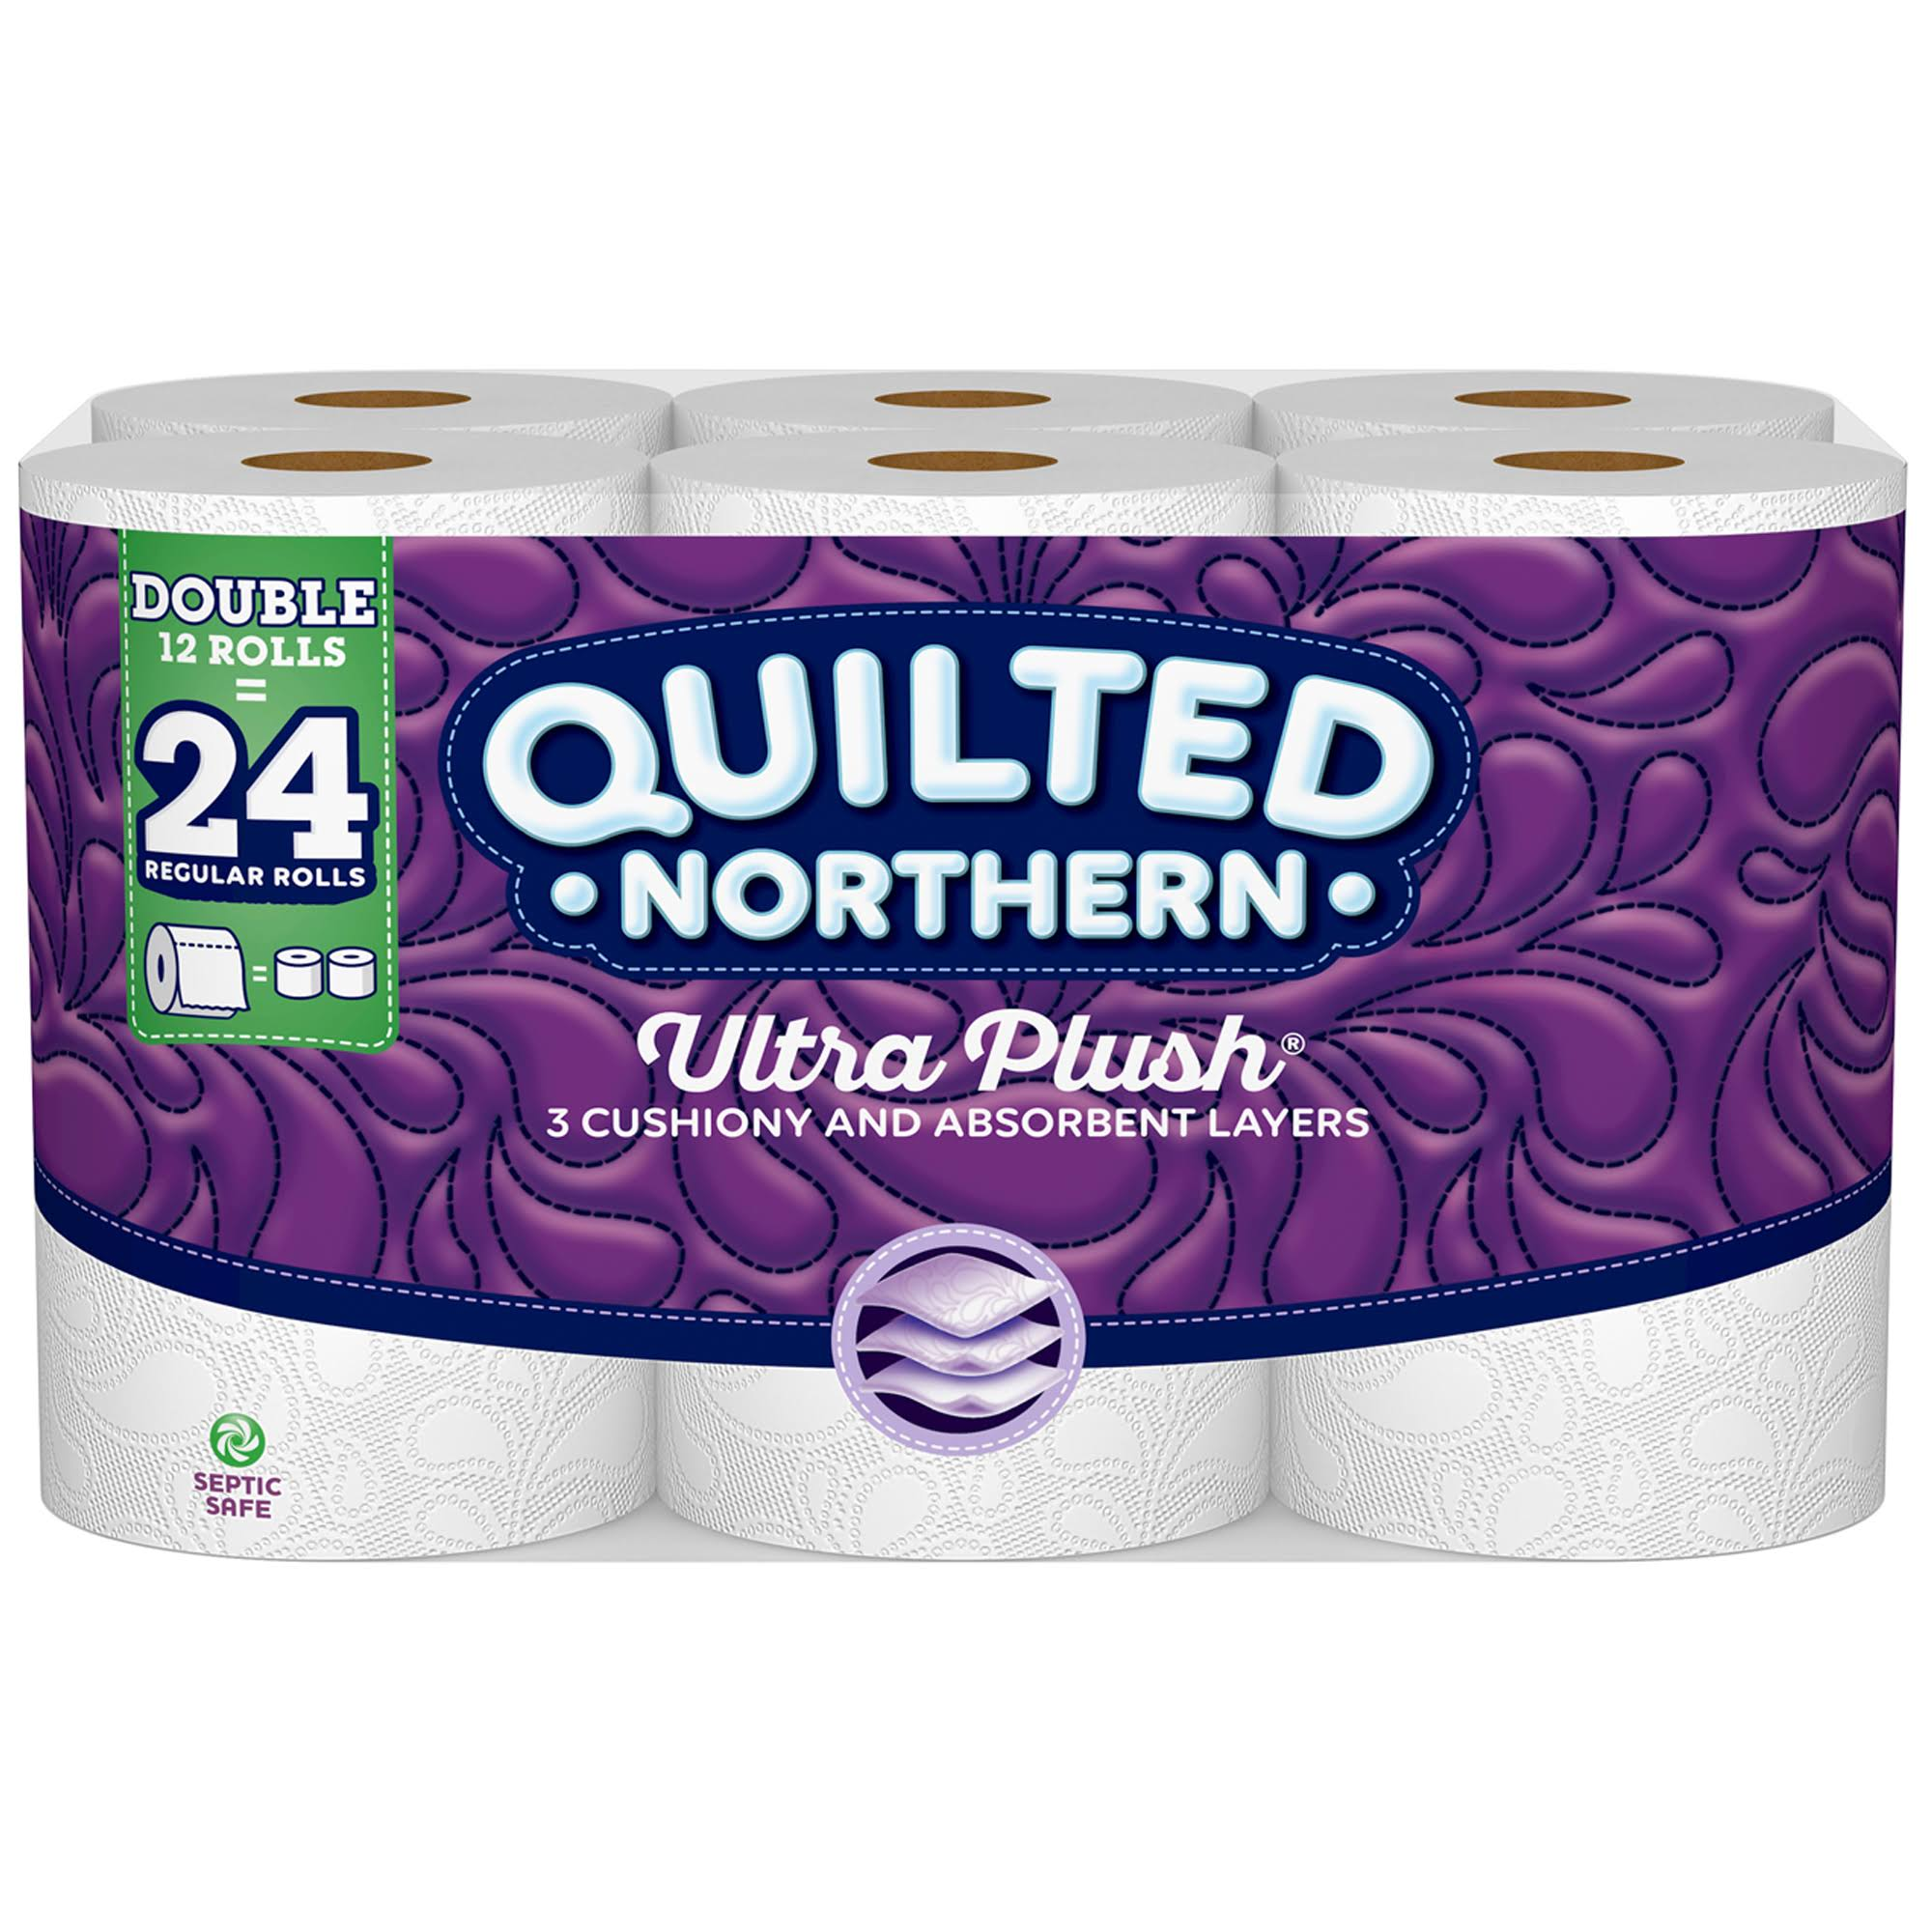 Quilted Northern Ultra Plush Toilet Paper, Double Rolls - 12 count